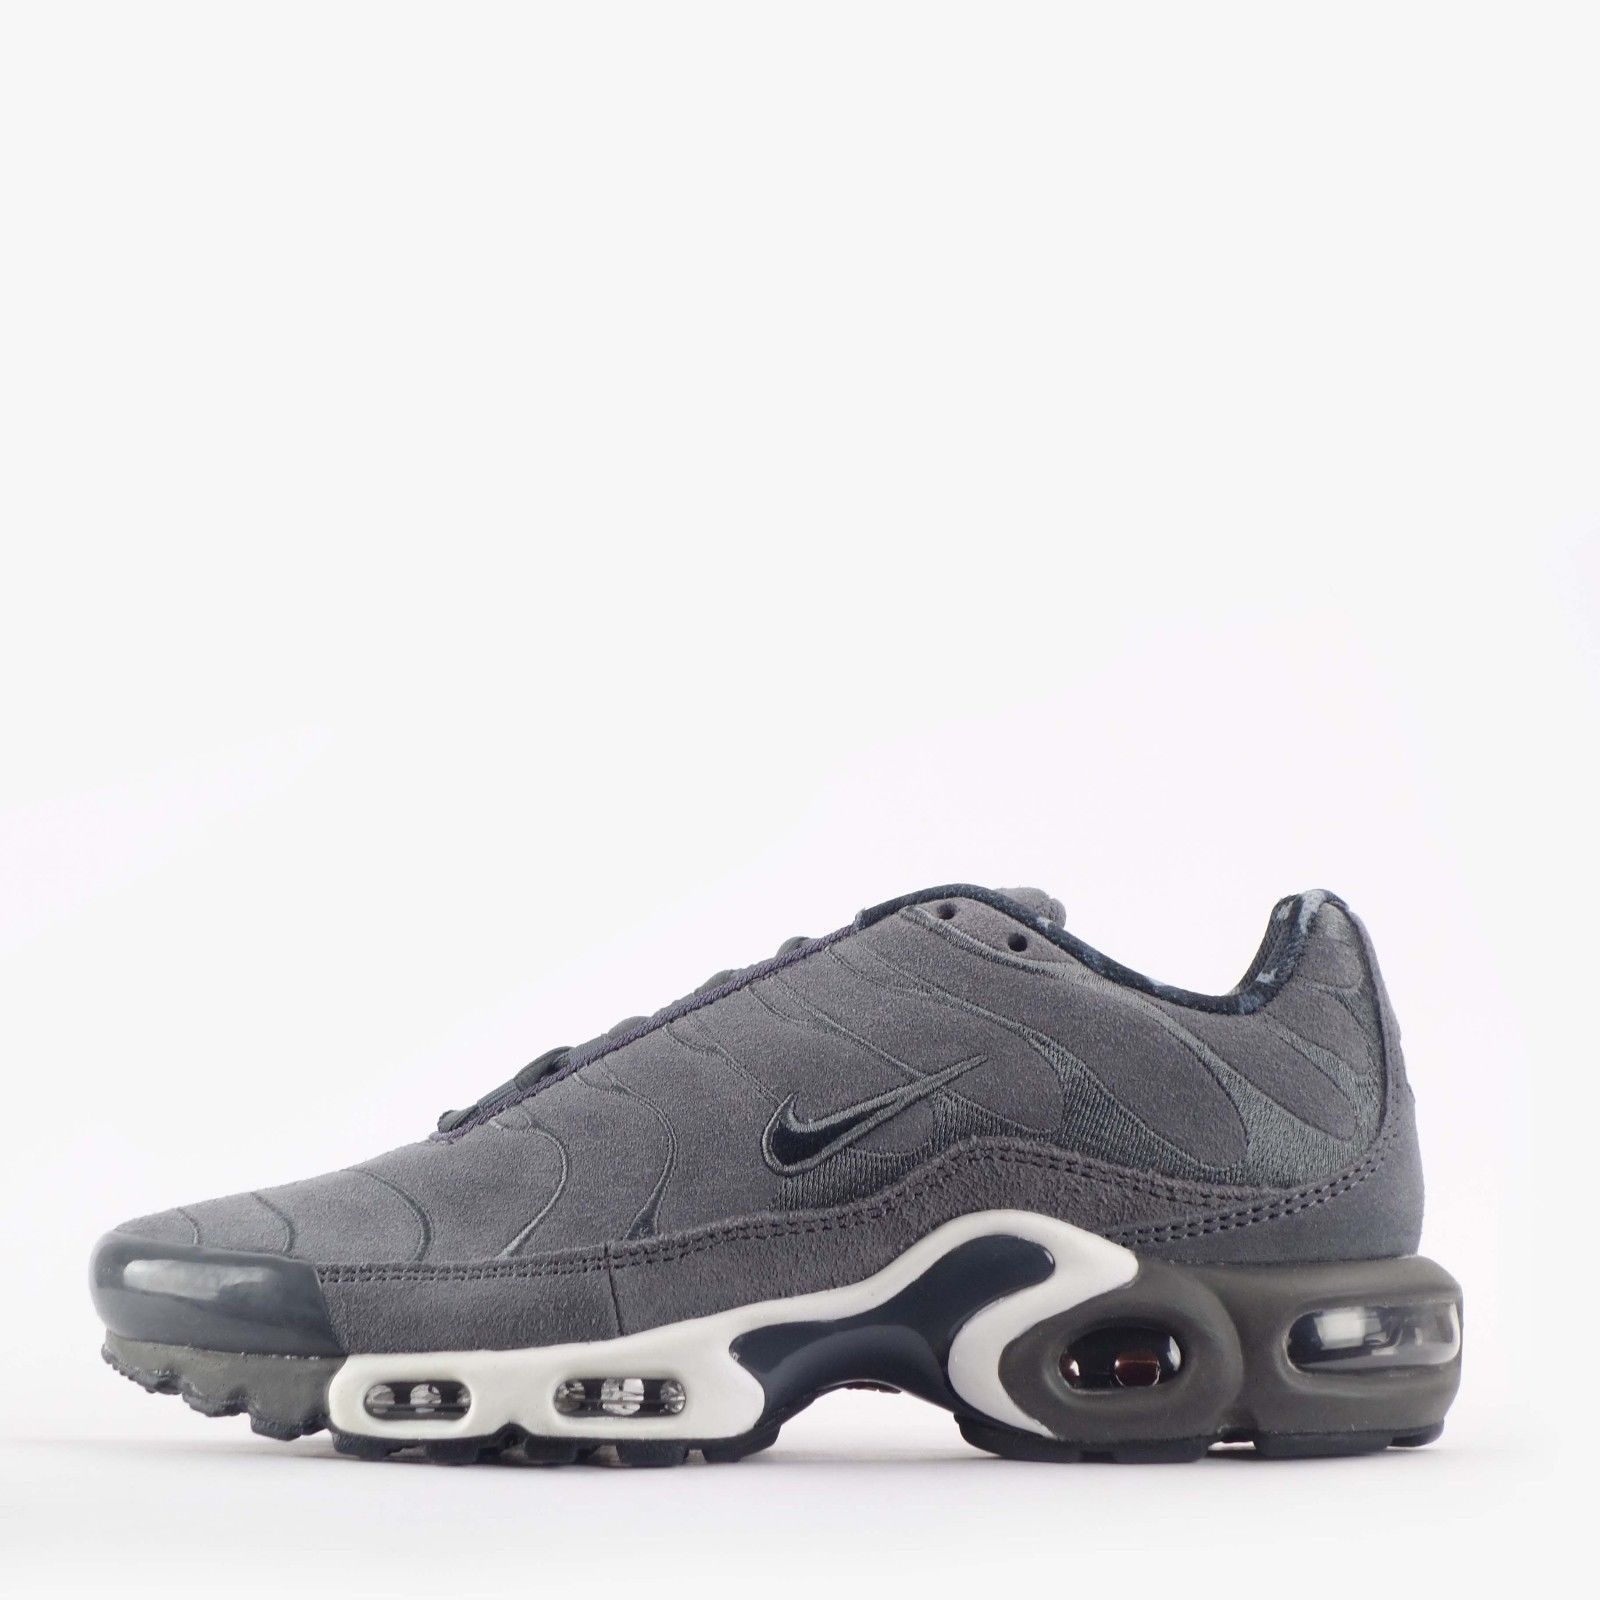 the best attitude da11f 20fa0 Nike Air Max Plus Premium Tuned TN Suede Mens Shoes In Dark Grey in  Clothes, Shoes   Accessories, Men s Shoes, Trainers   eBay